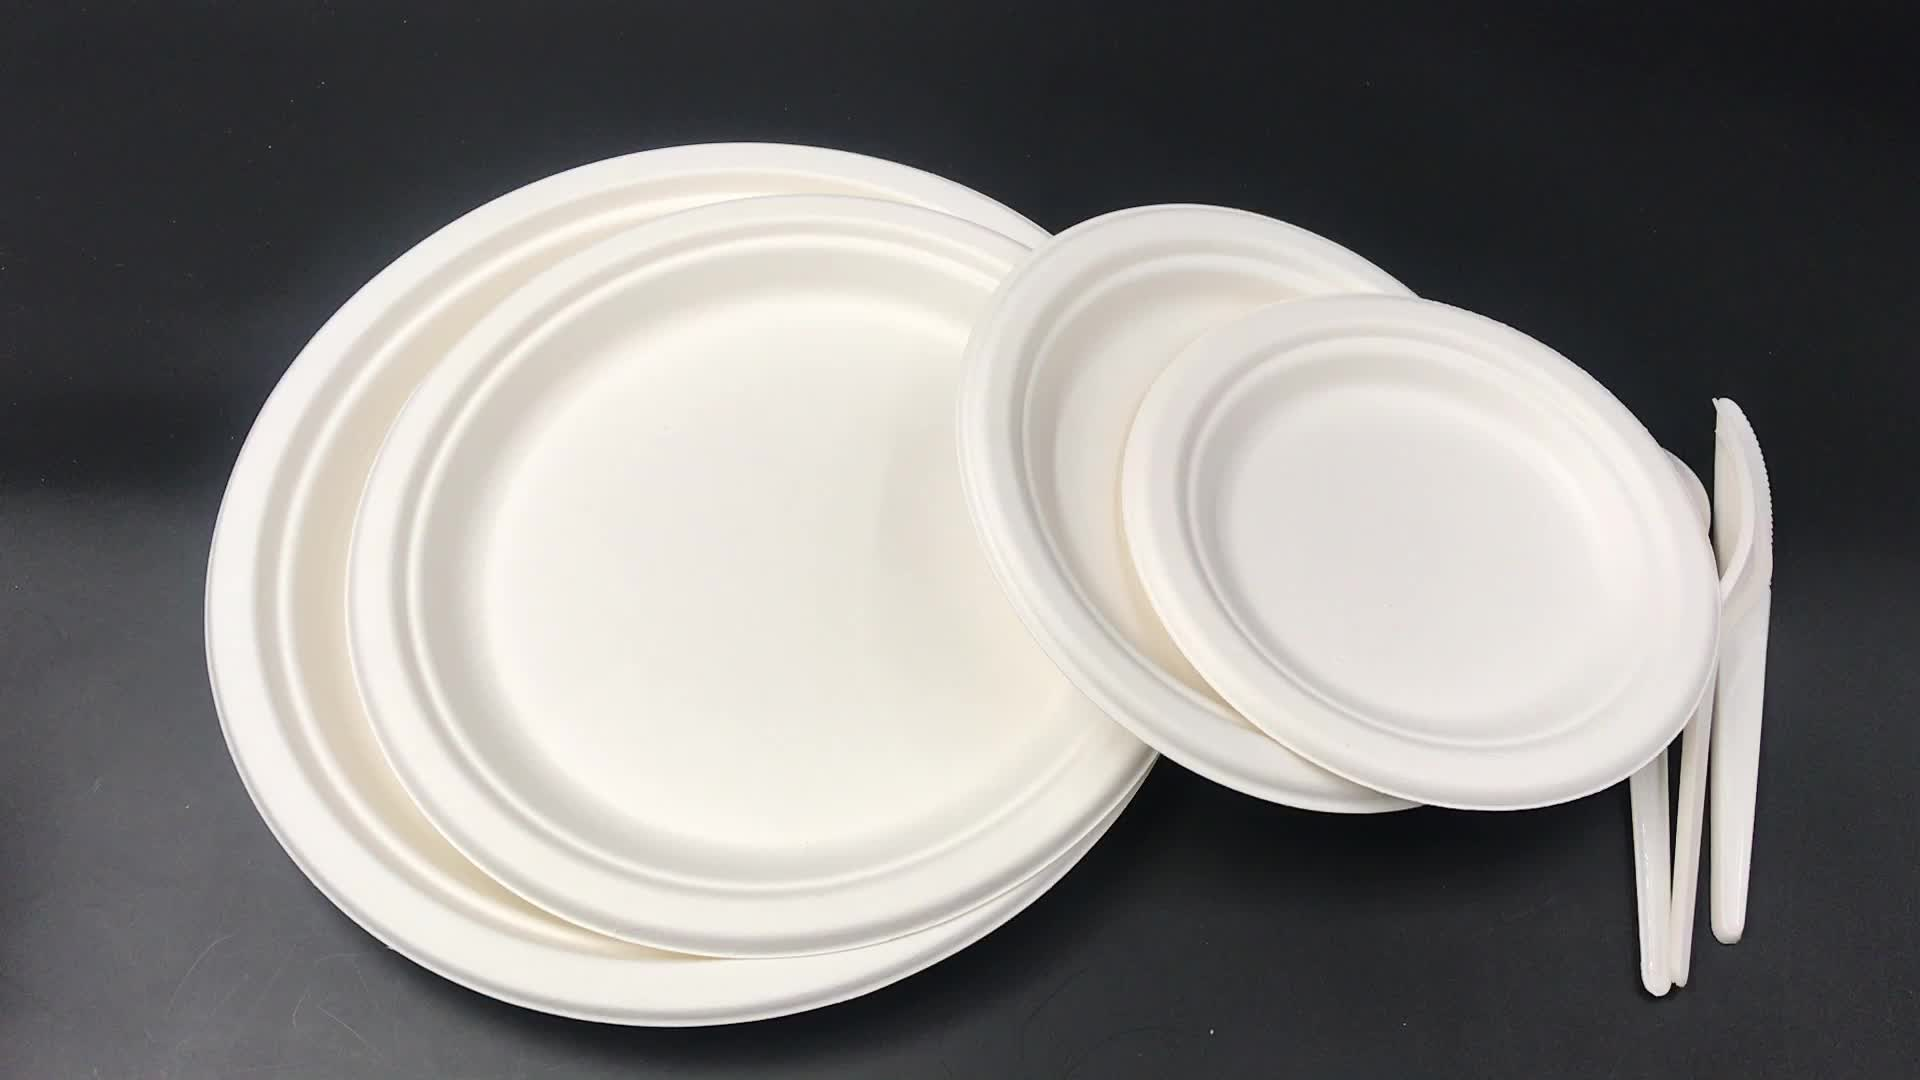 100% Eco friendly tableware sugarcane pulp fast food plate pure bagasse disposable biodegradable plates and cutlery